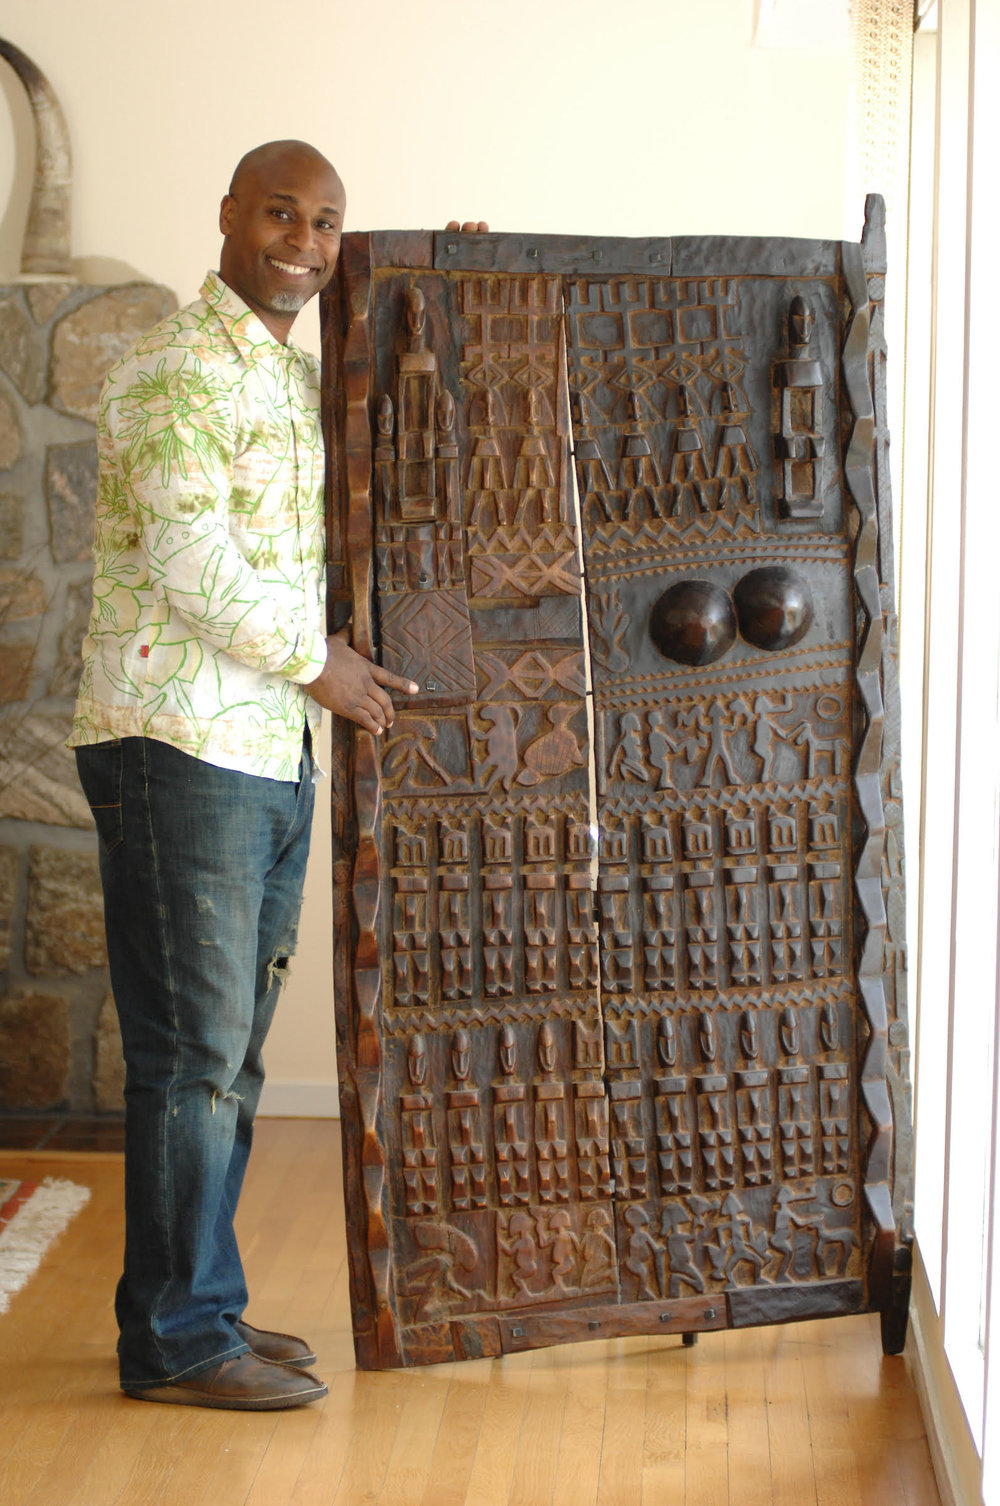 Everick Brown holding wooden sculptures